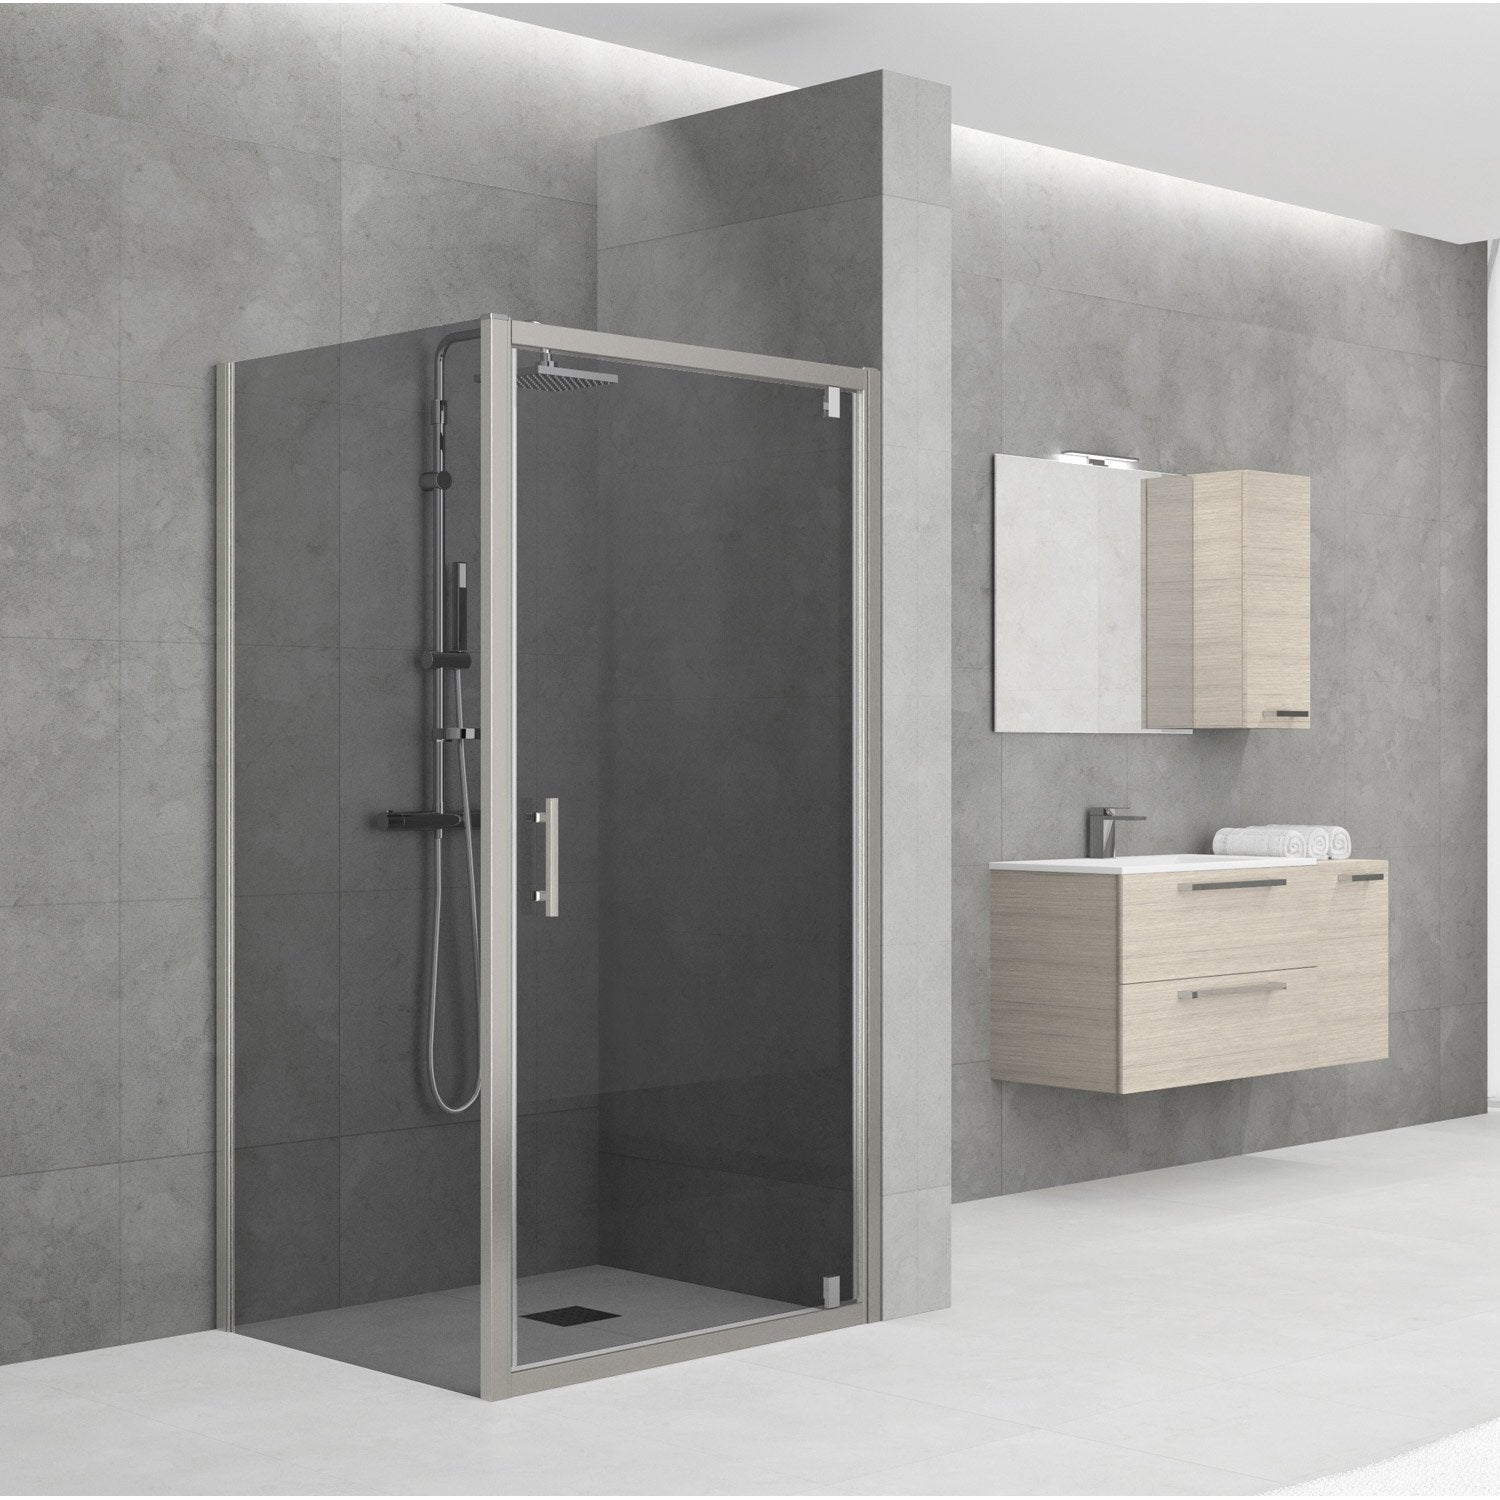 porte de douche pivotante 78 84 cm profil chrom elyt. Black Bedroom Furniture Sets. Home Design Ideas